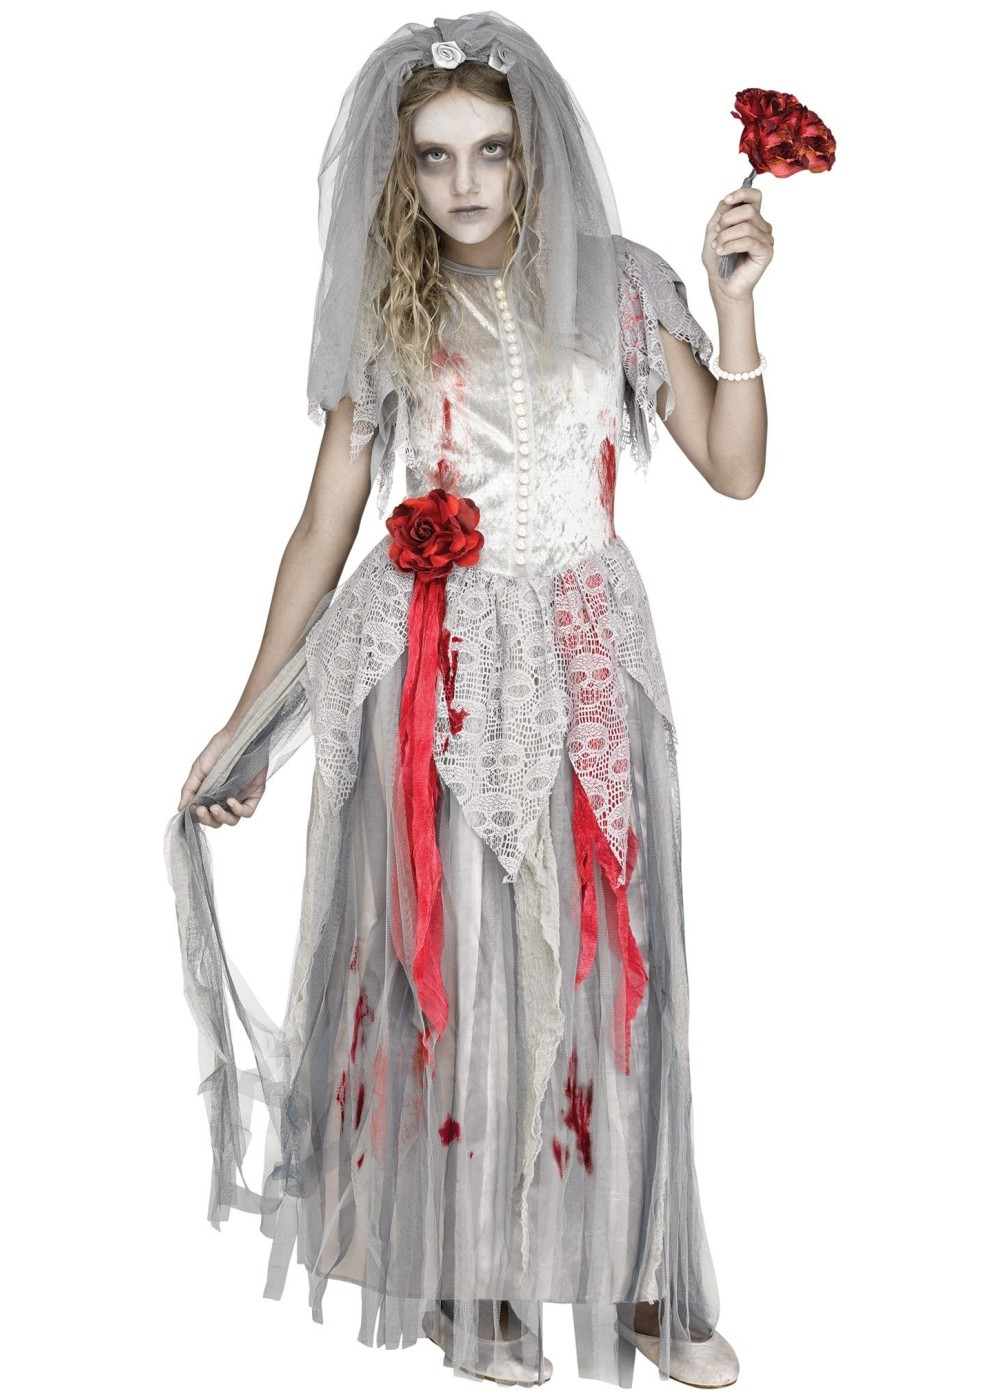 Halloween Zombie Costumes For Girls.Zombie Bride Girl Costume Scary Costumes